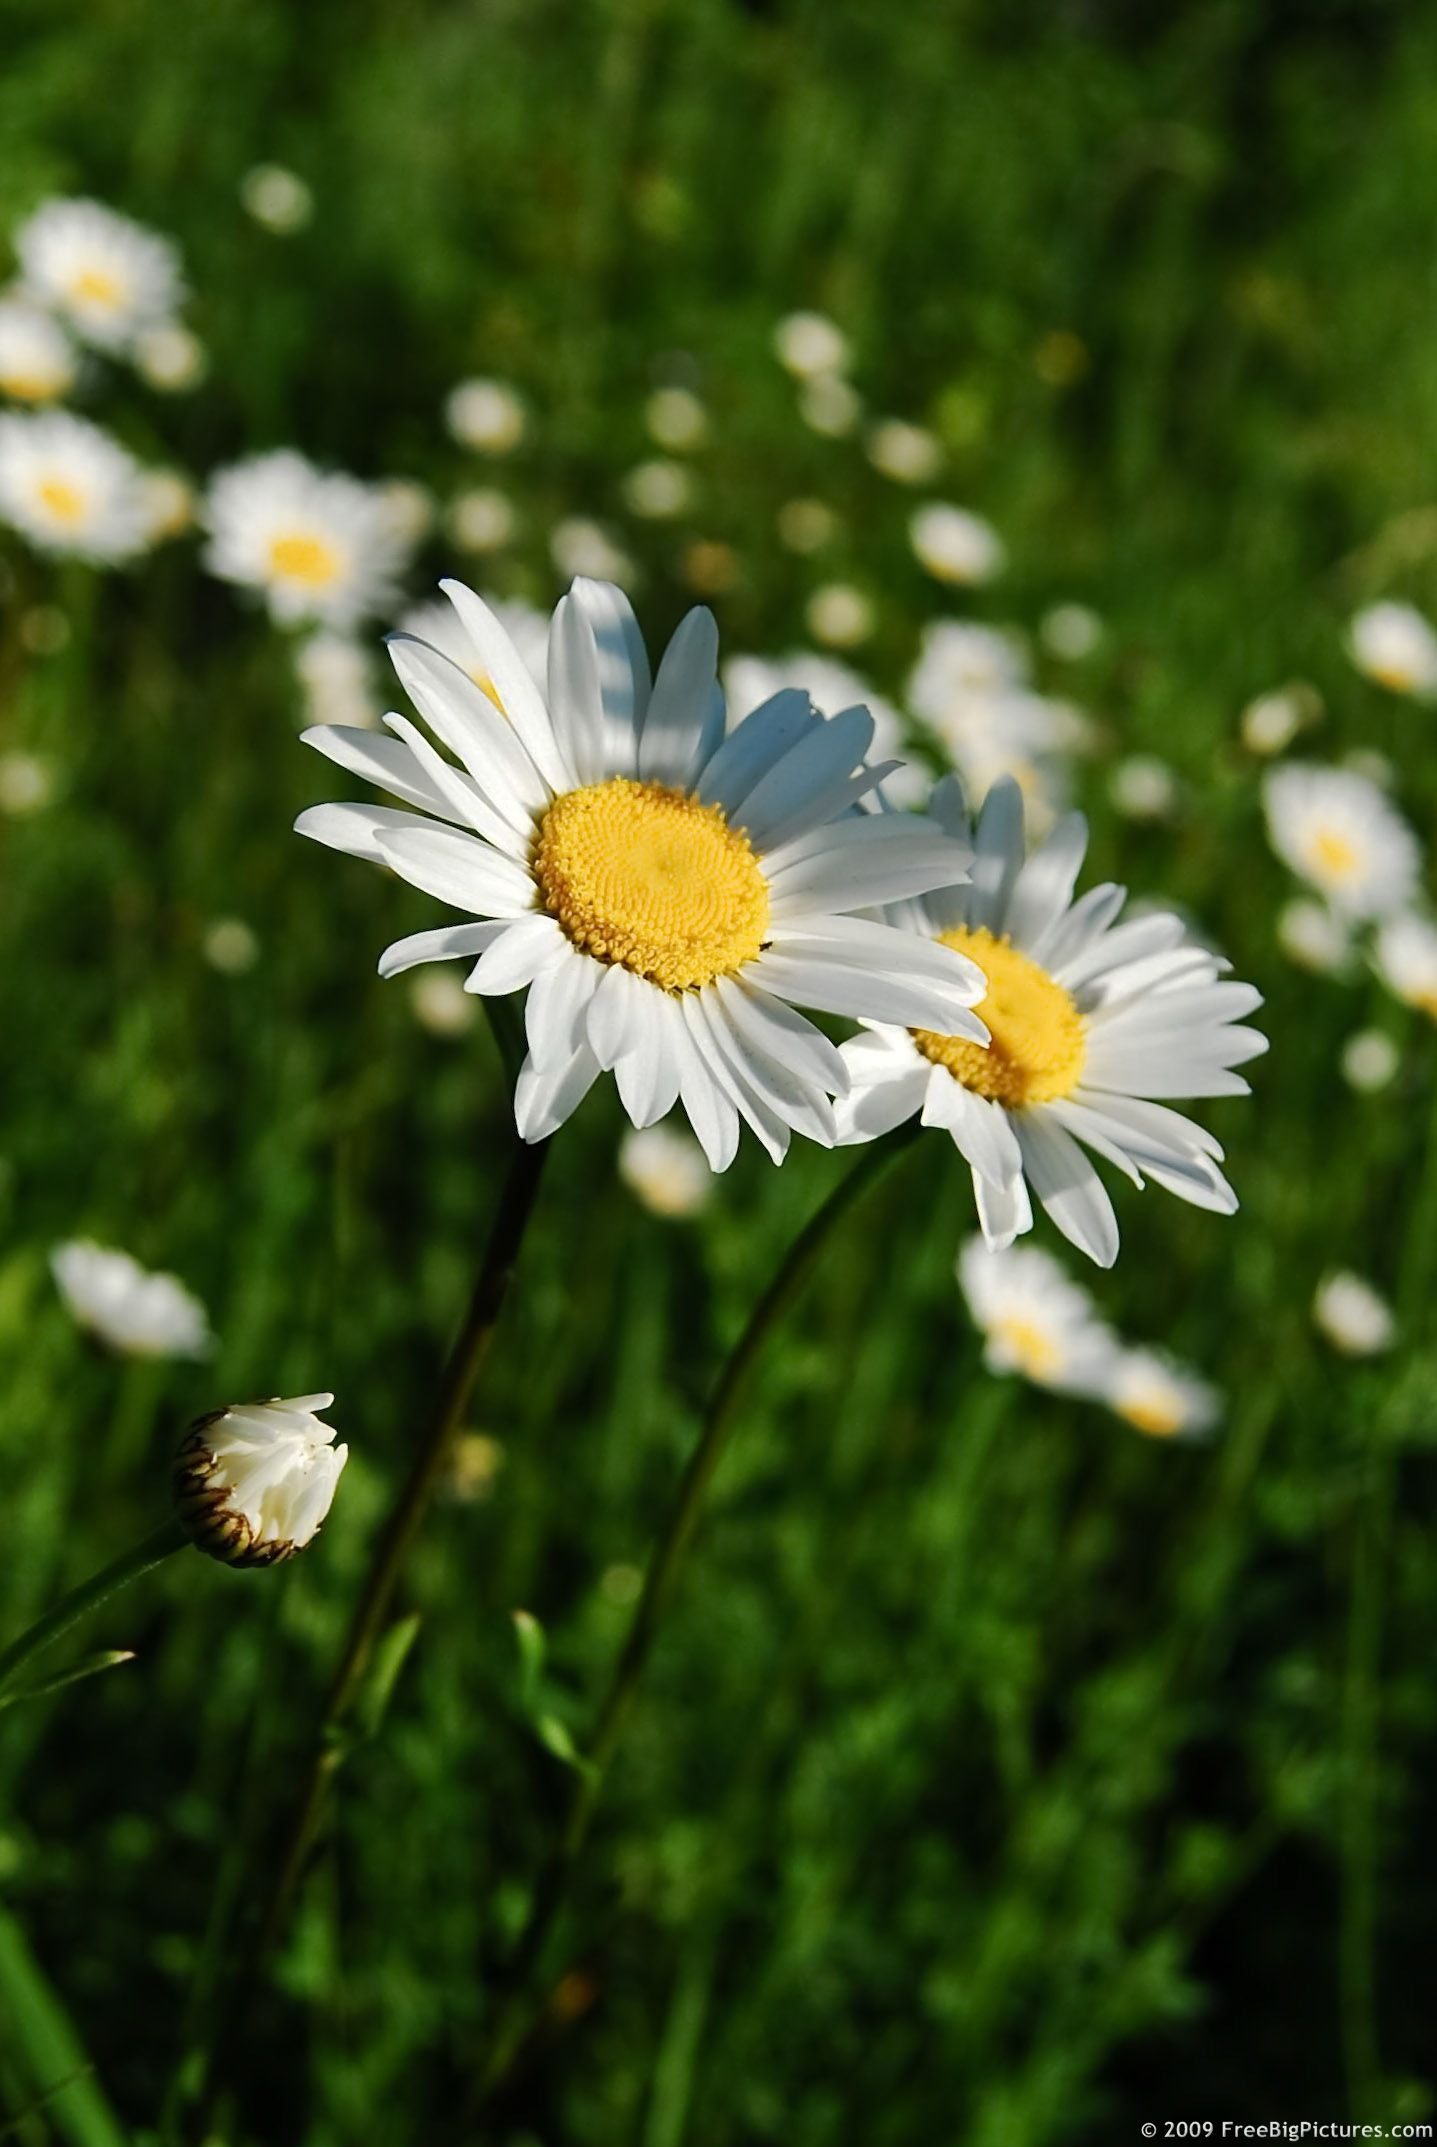 Daisies pictures photo of wild flowers daisies is a lovely daisies pictures photo of wild flowers daisies is a lovely picture to free use izmirmasajfo Choice Image